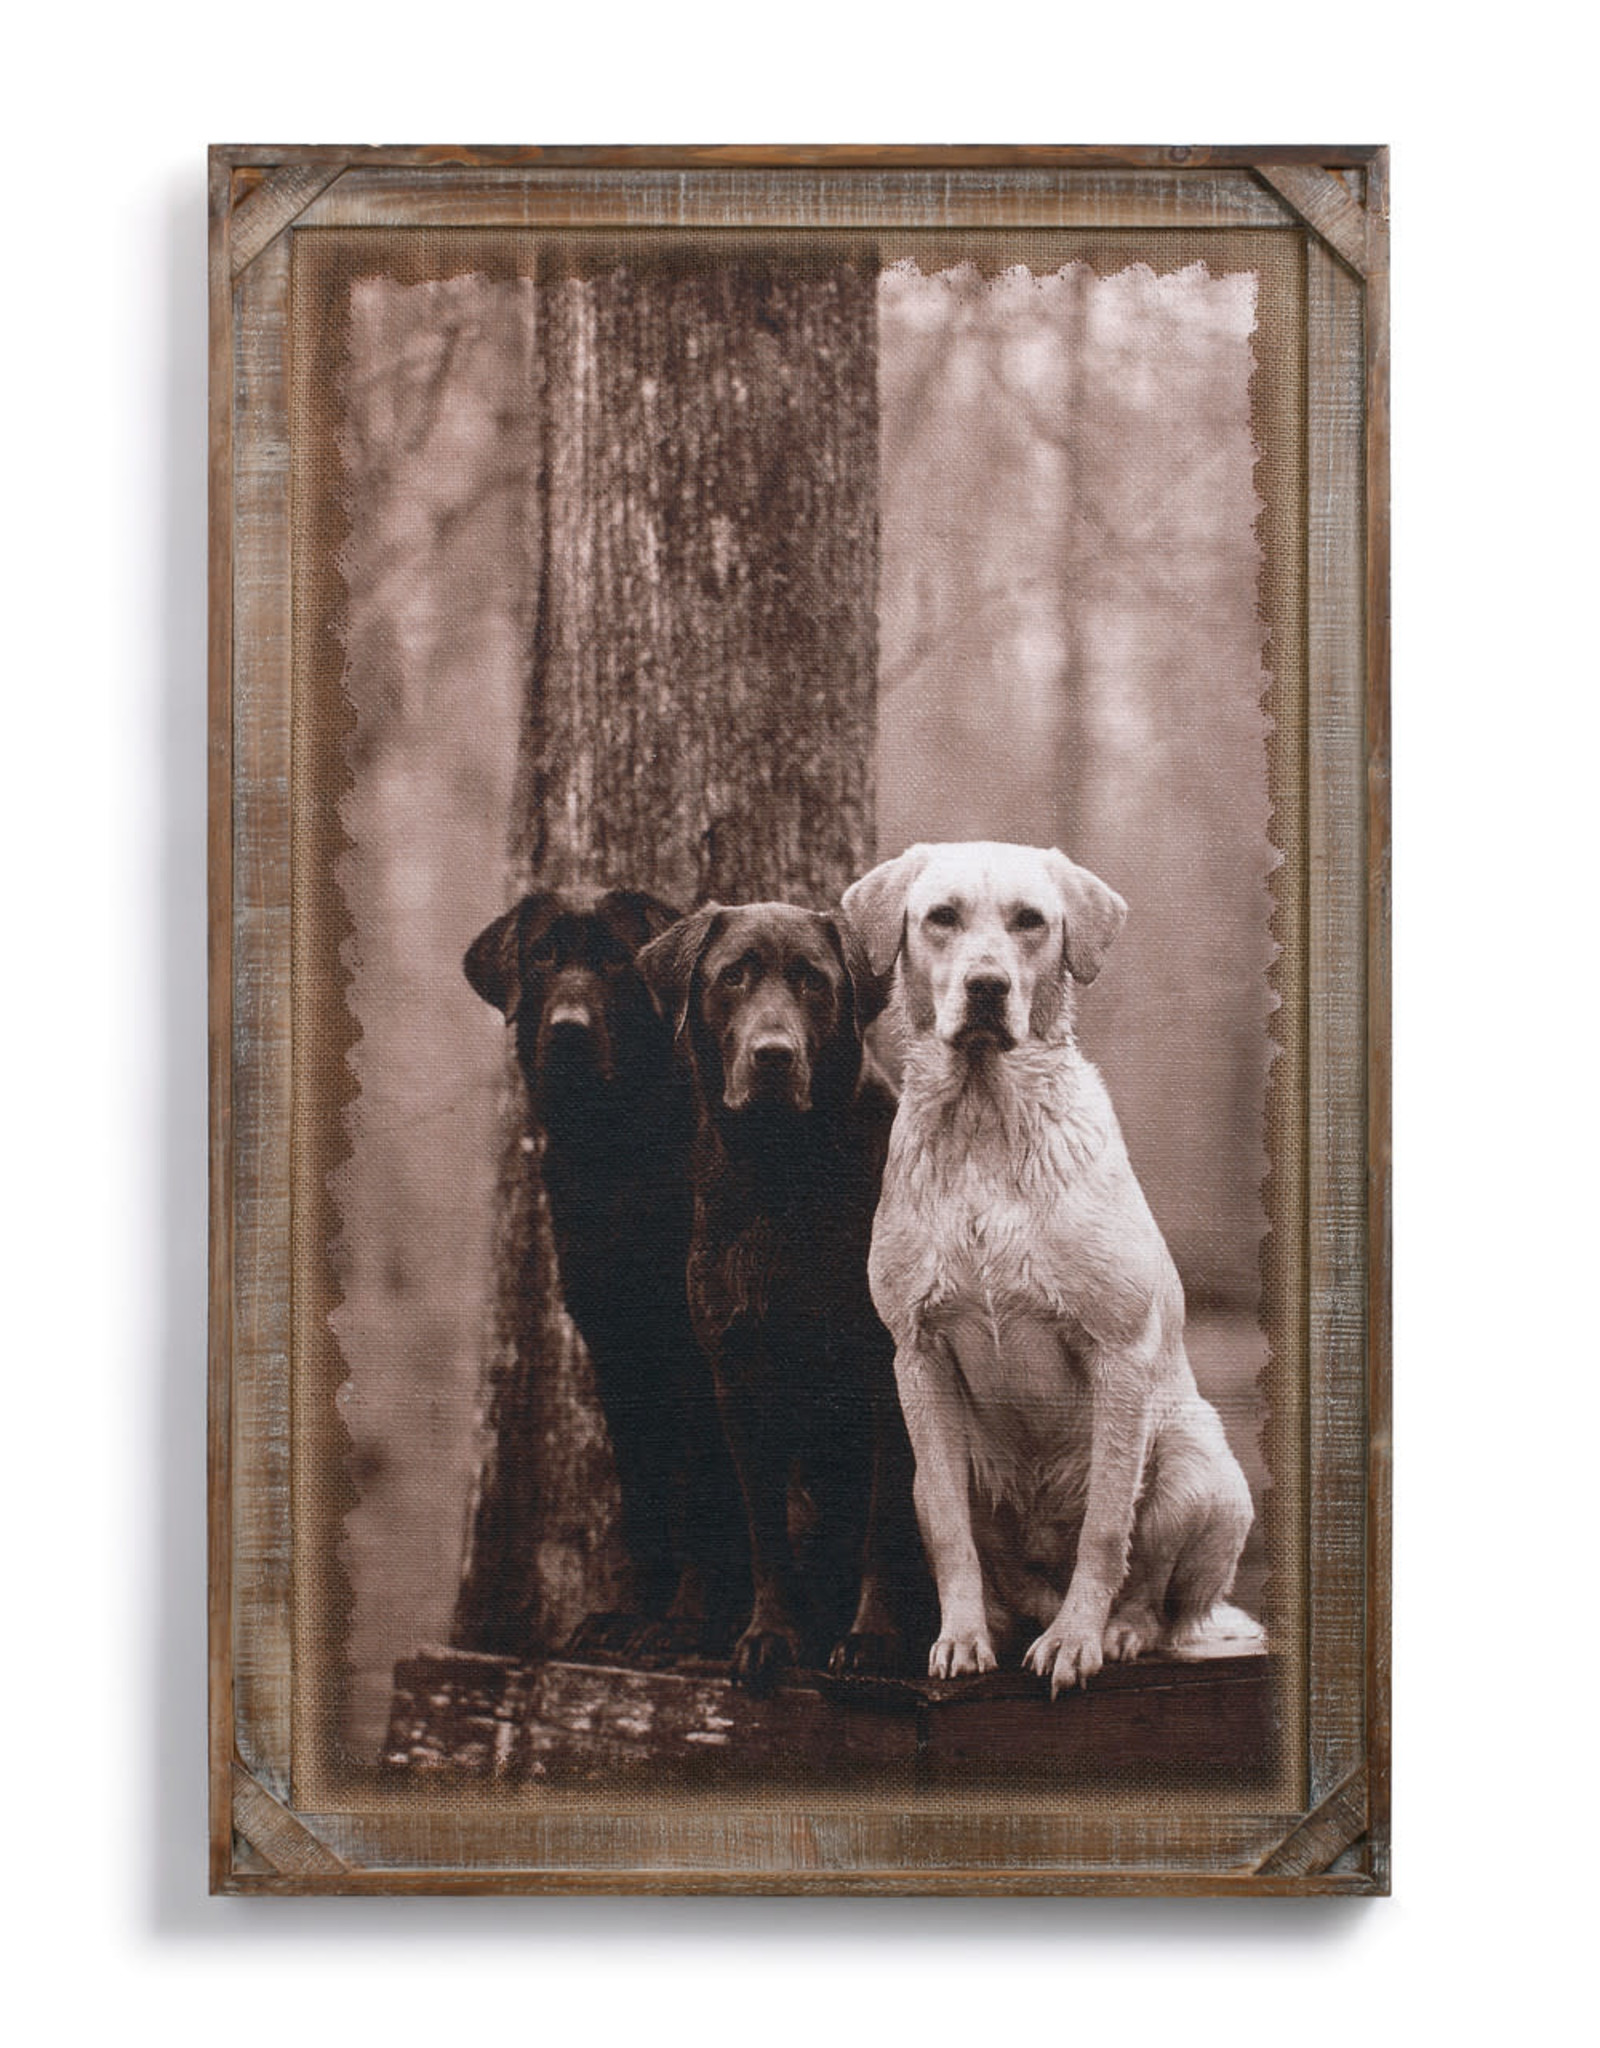 Man's Best Friend - Wall Art